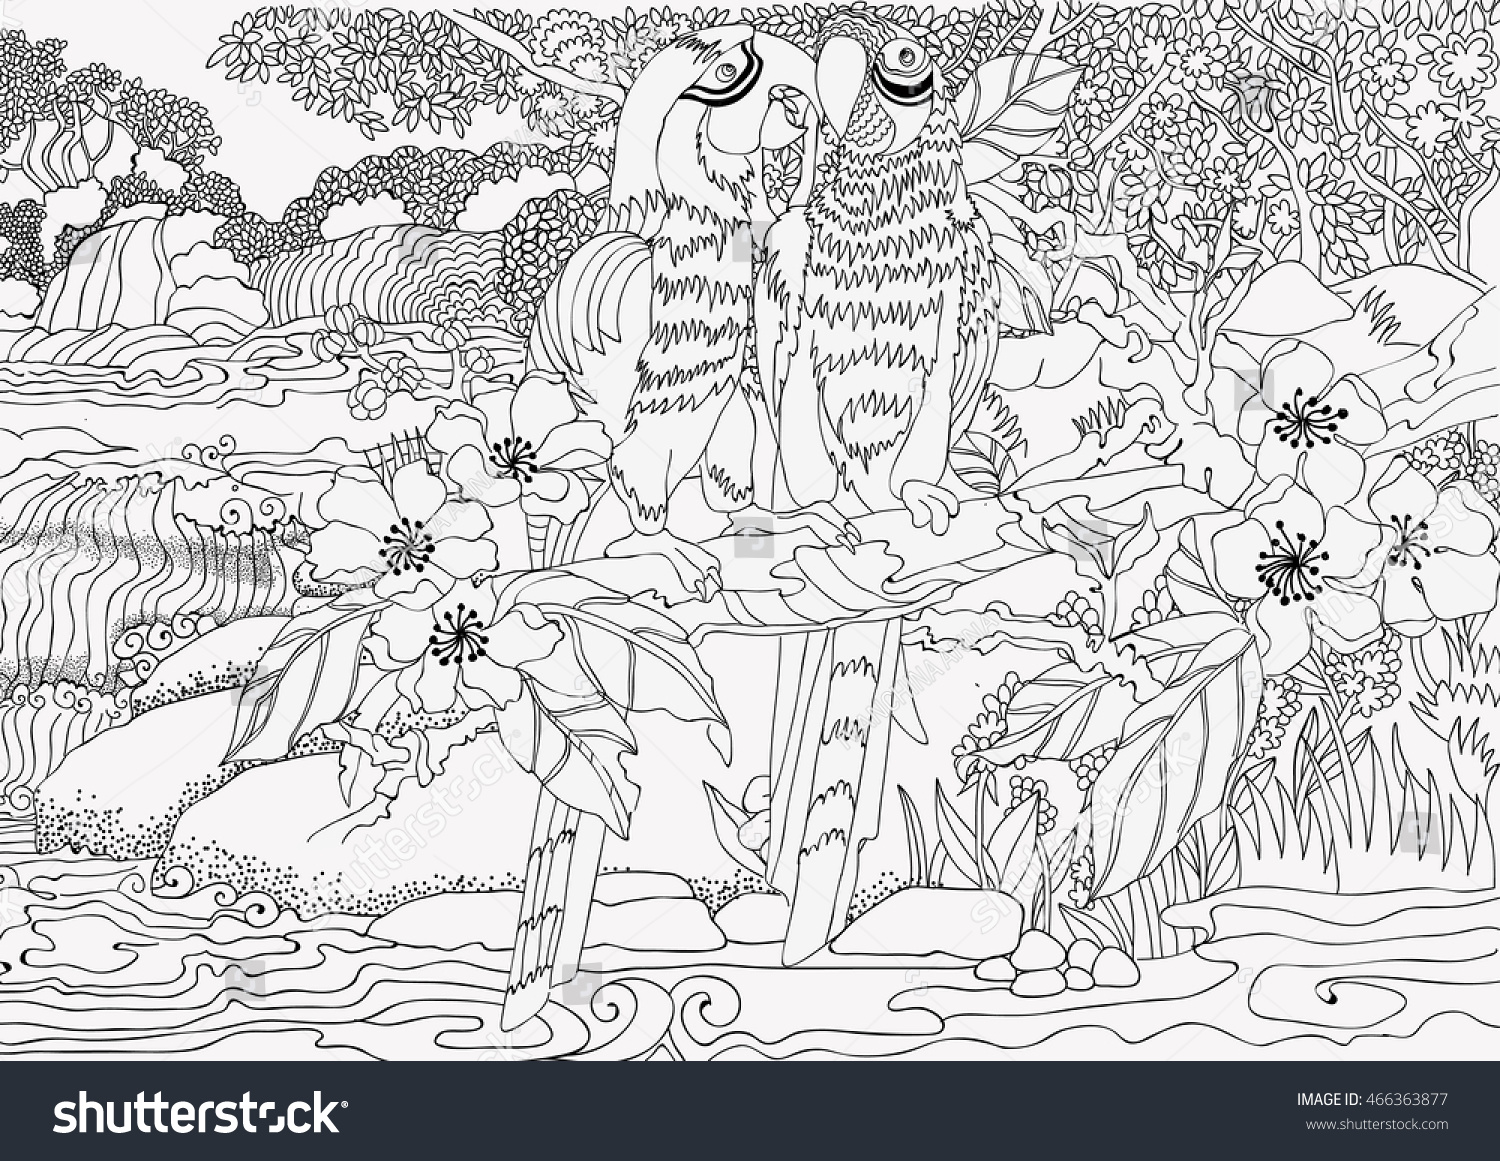 coloring pages loving parrots on background stock vector 466363877